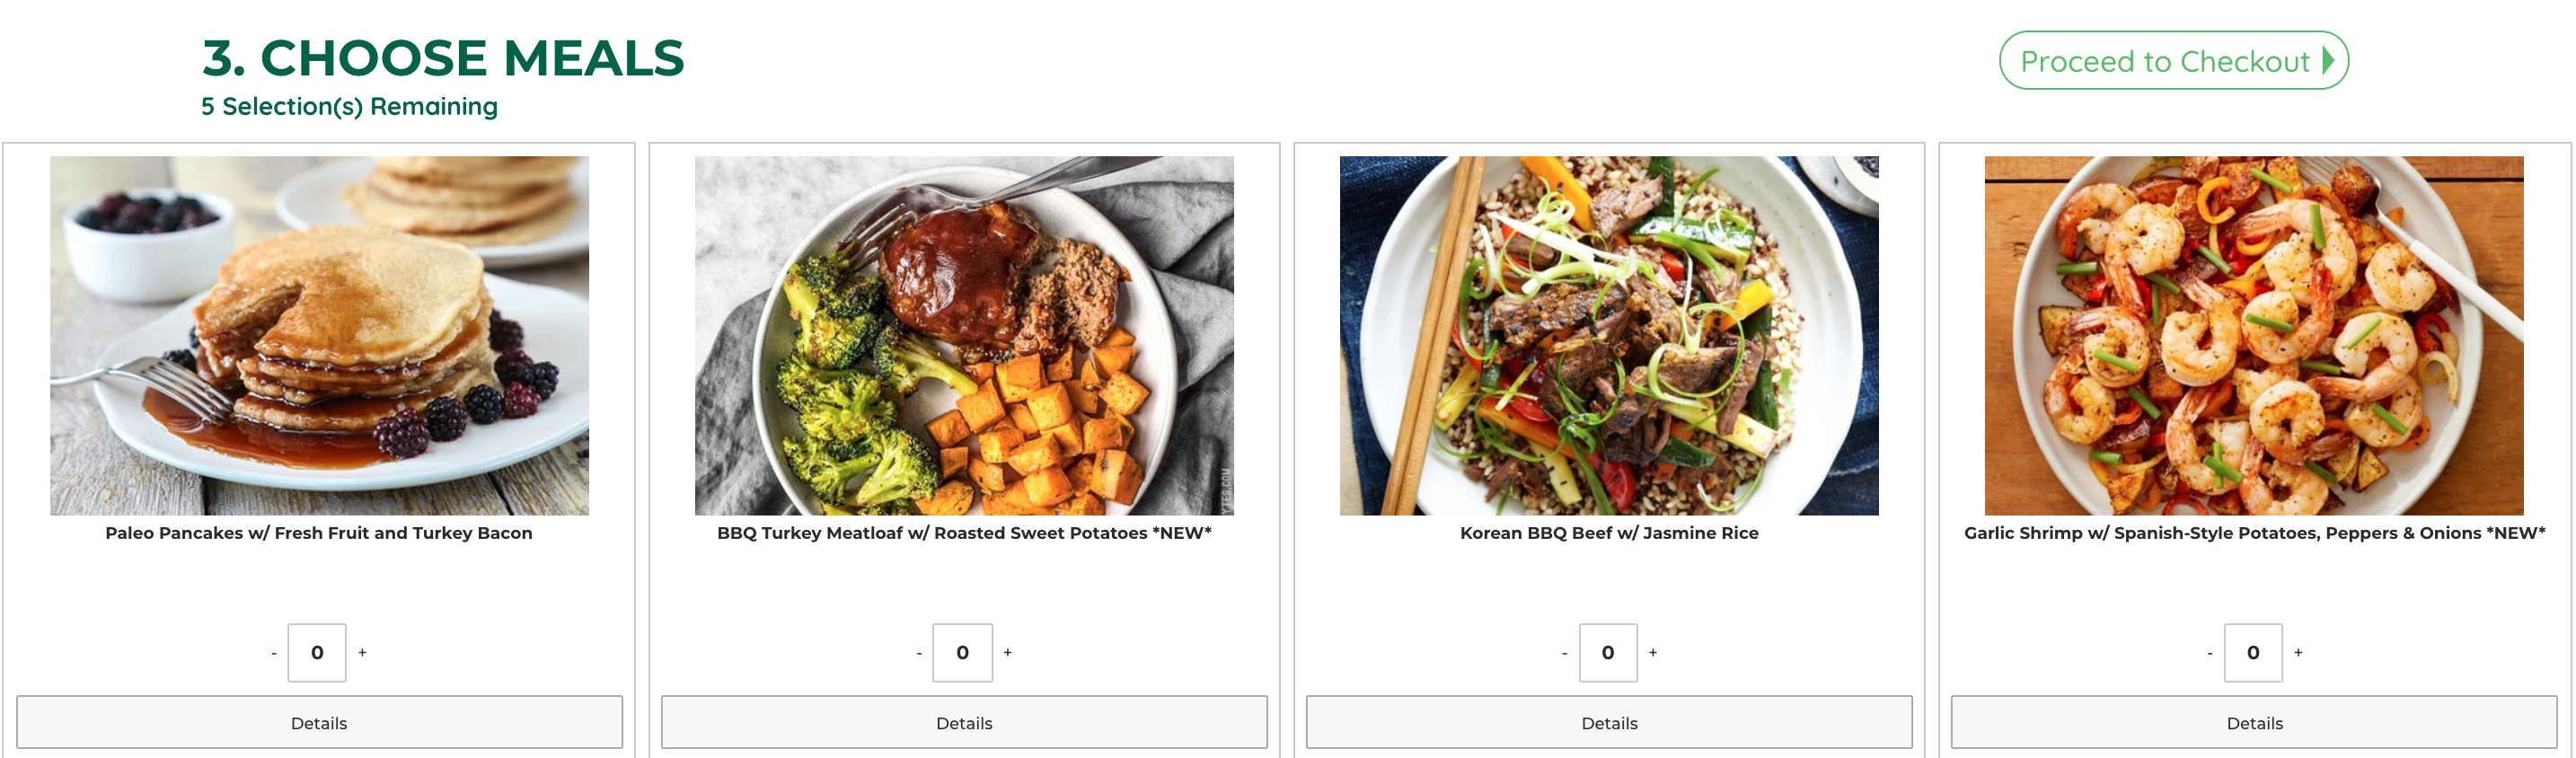 Four images of Paleo food options